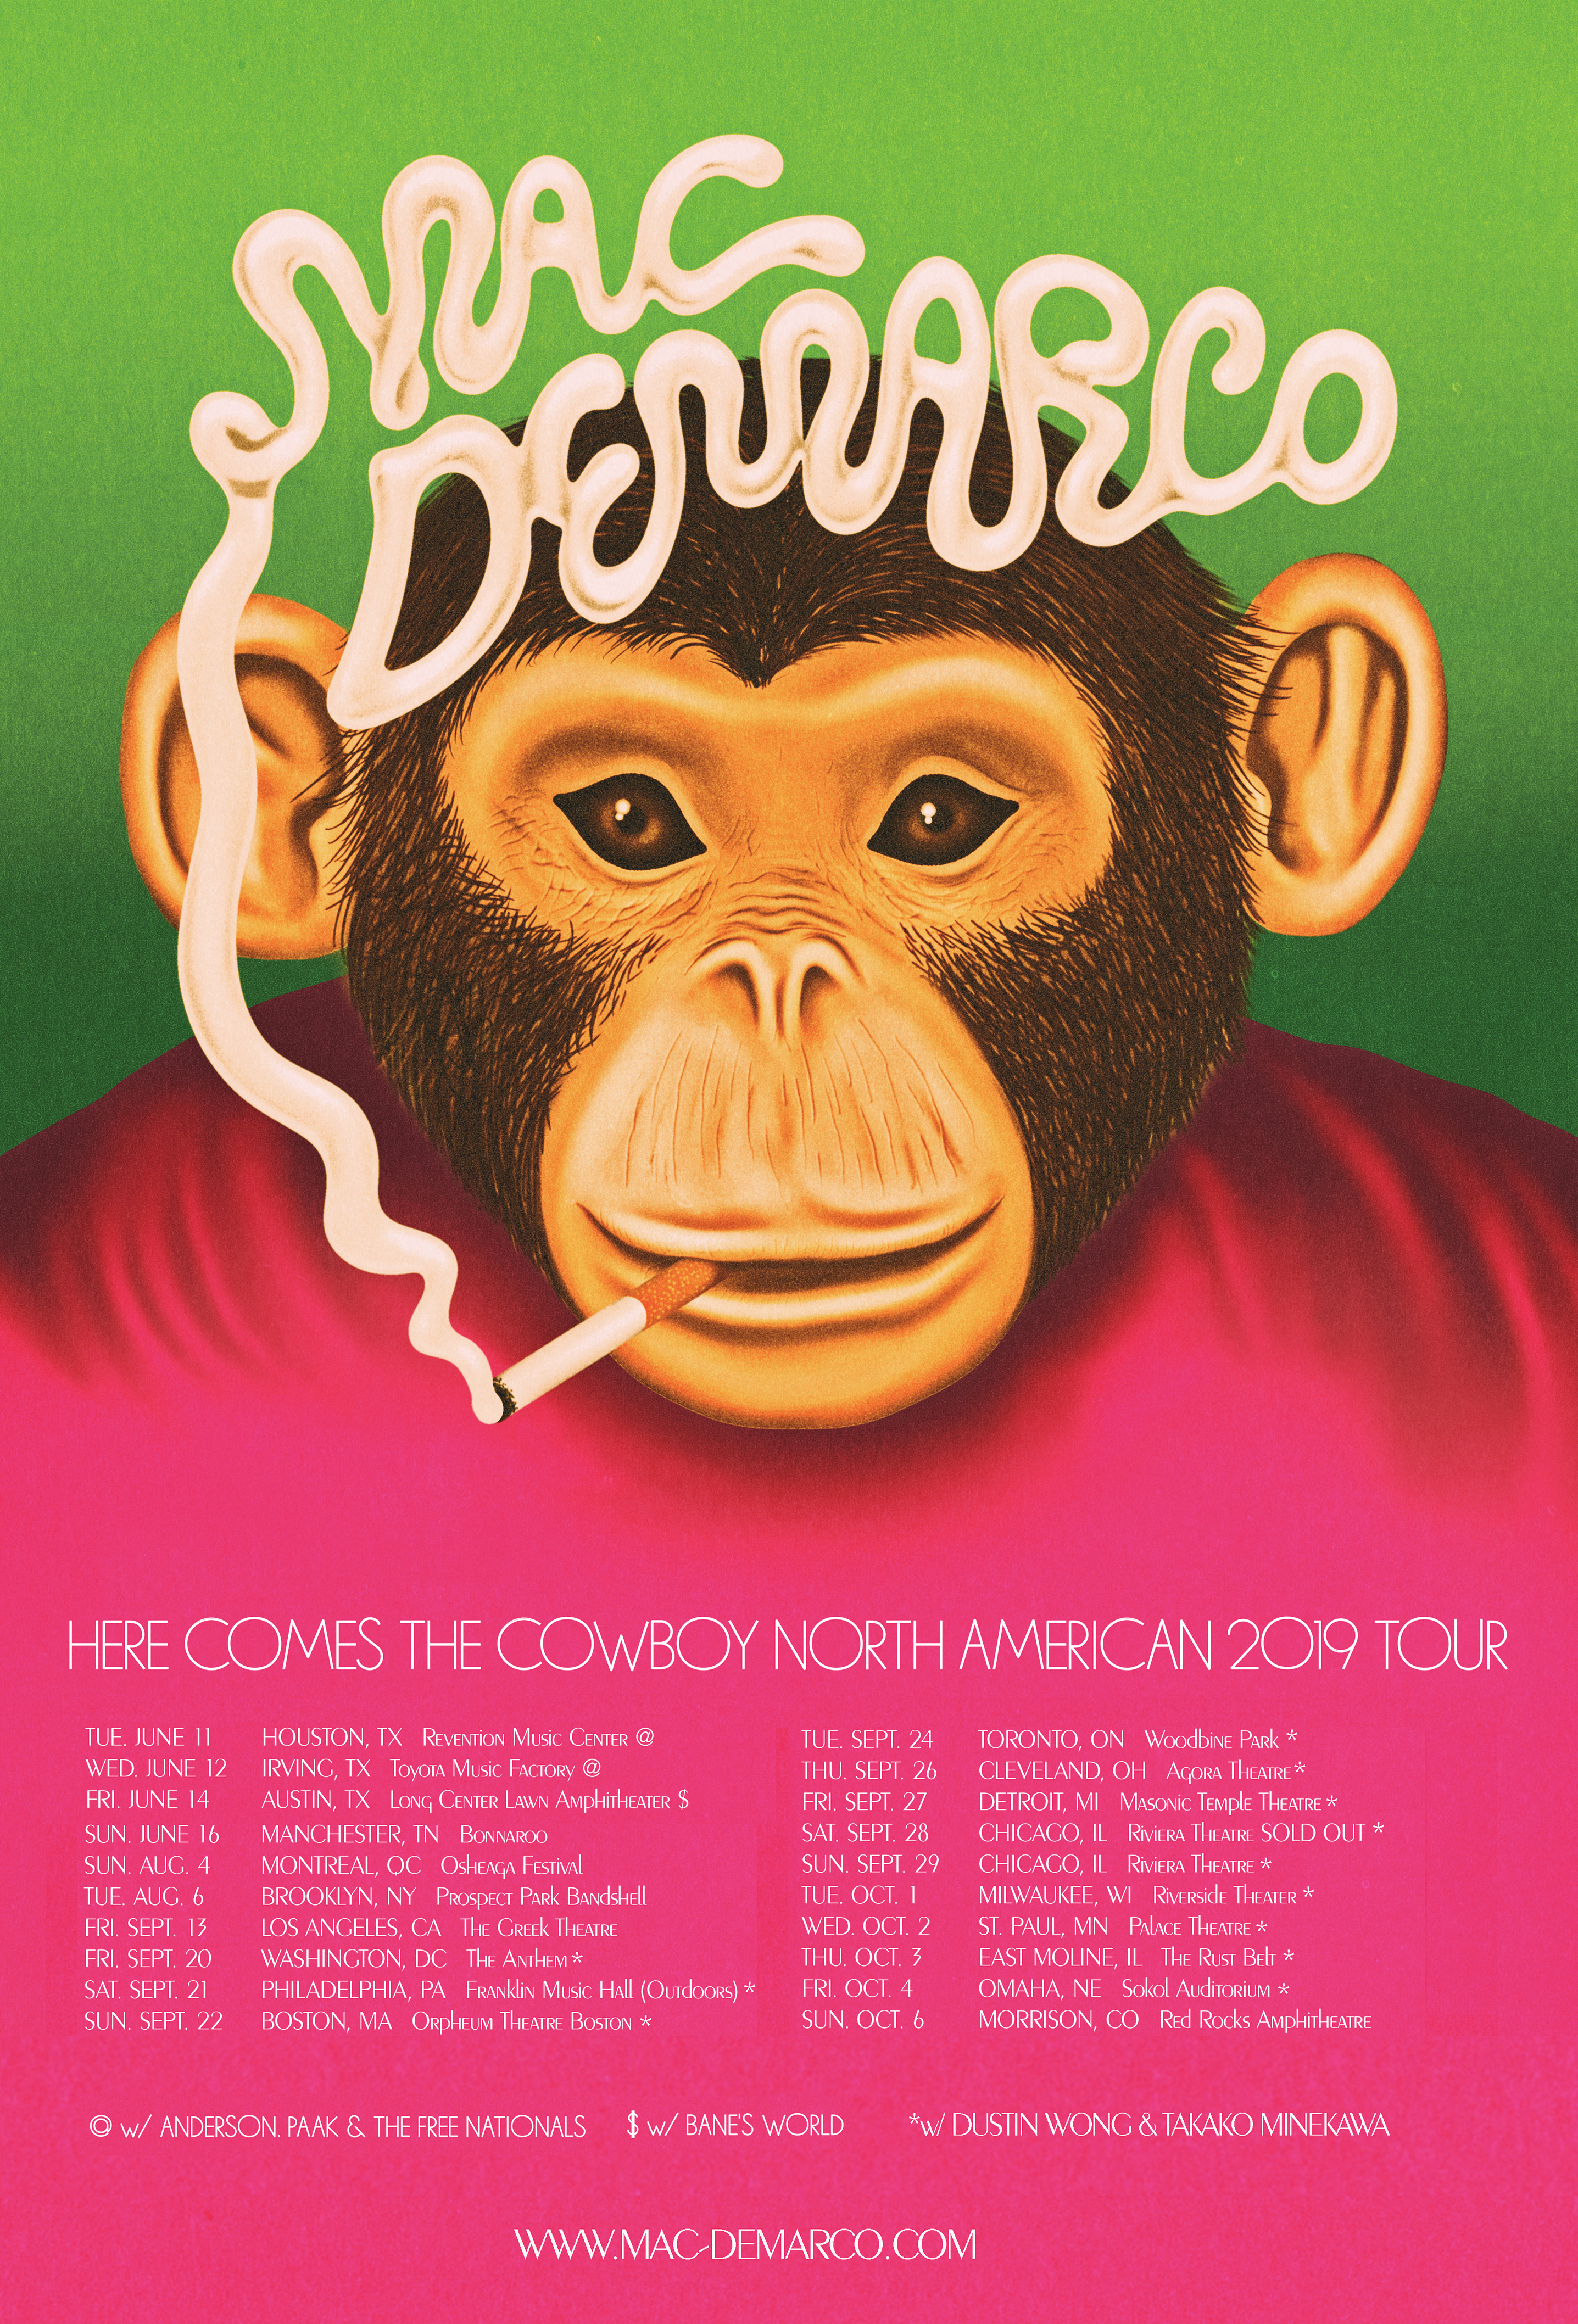 Support Announced for Fall Tour - Mac DeMarco